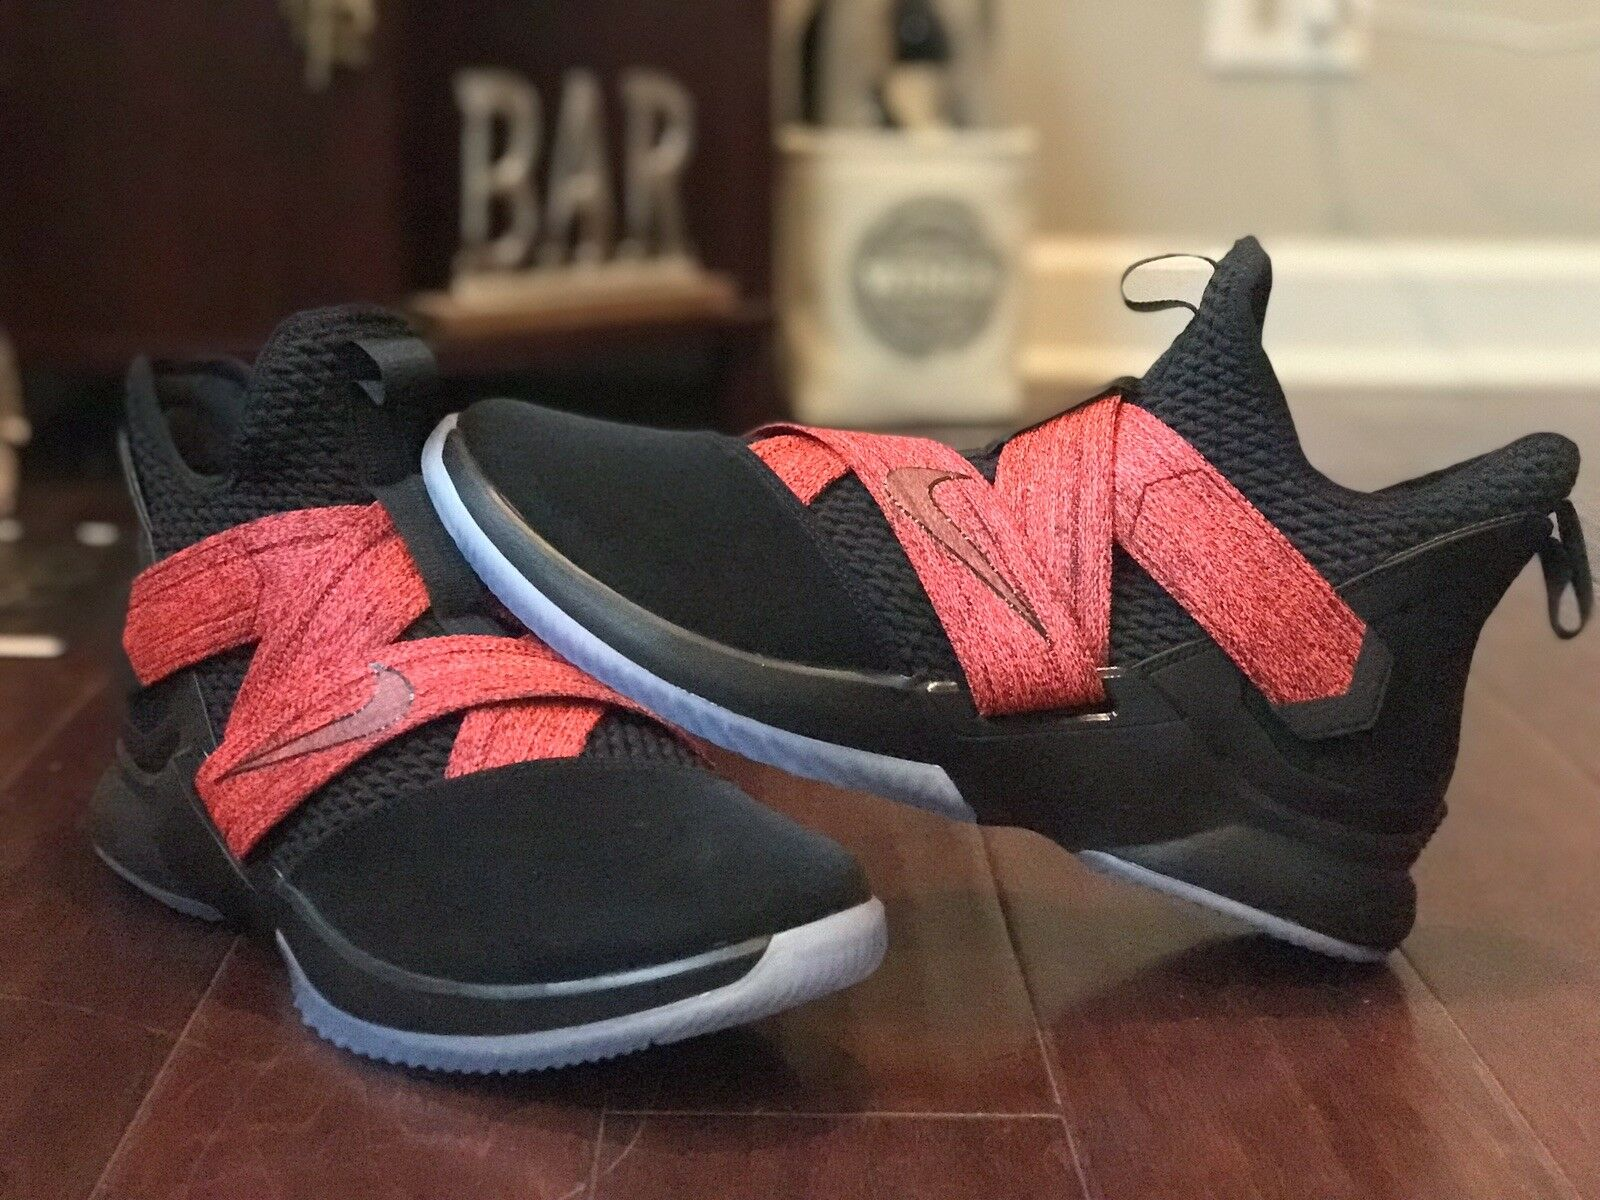 Nike LeBron Soldier 12 XII BRED BLACK RED AO2609-003 SIZE 13.5